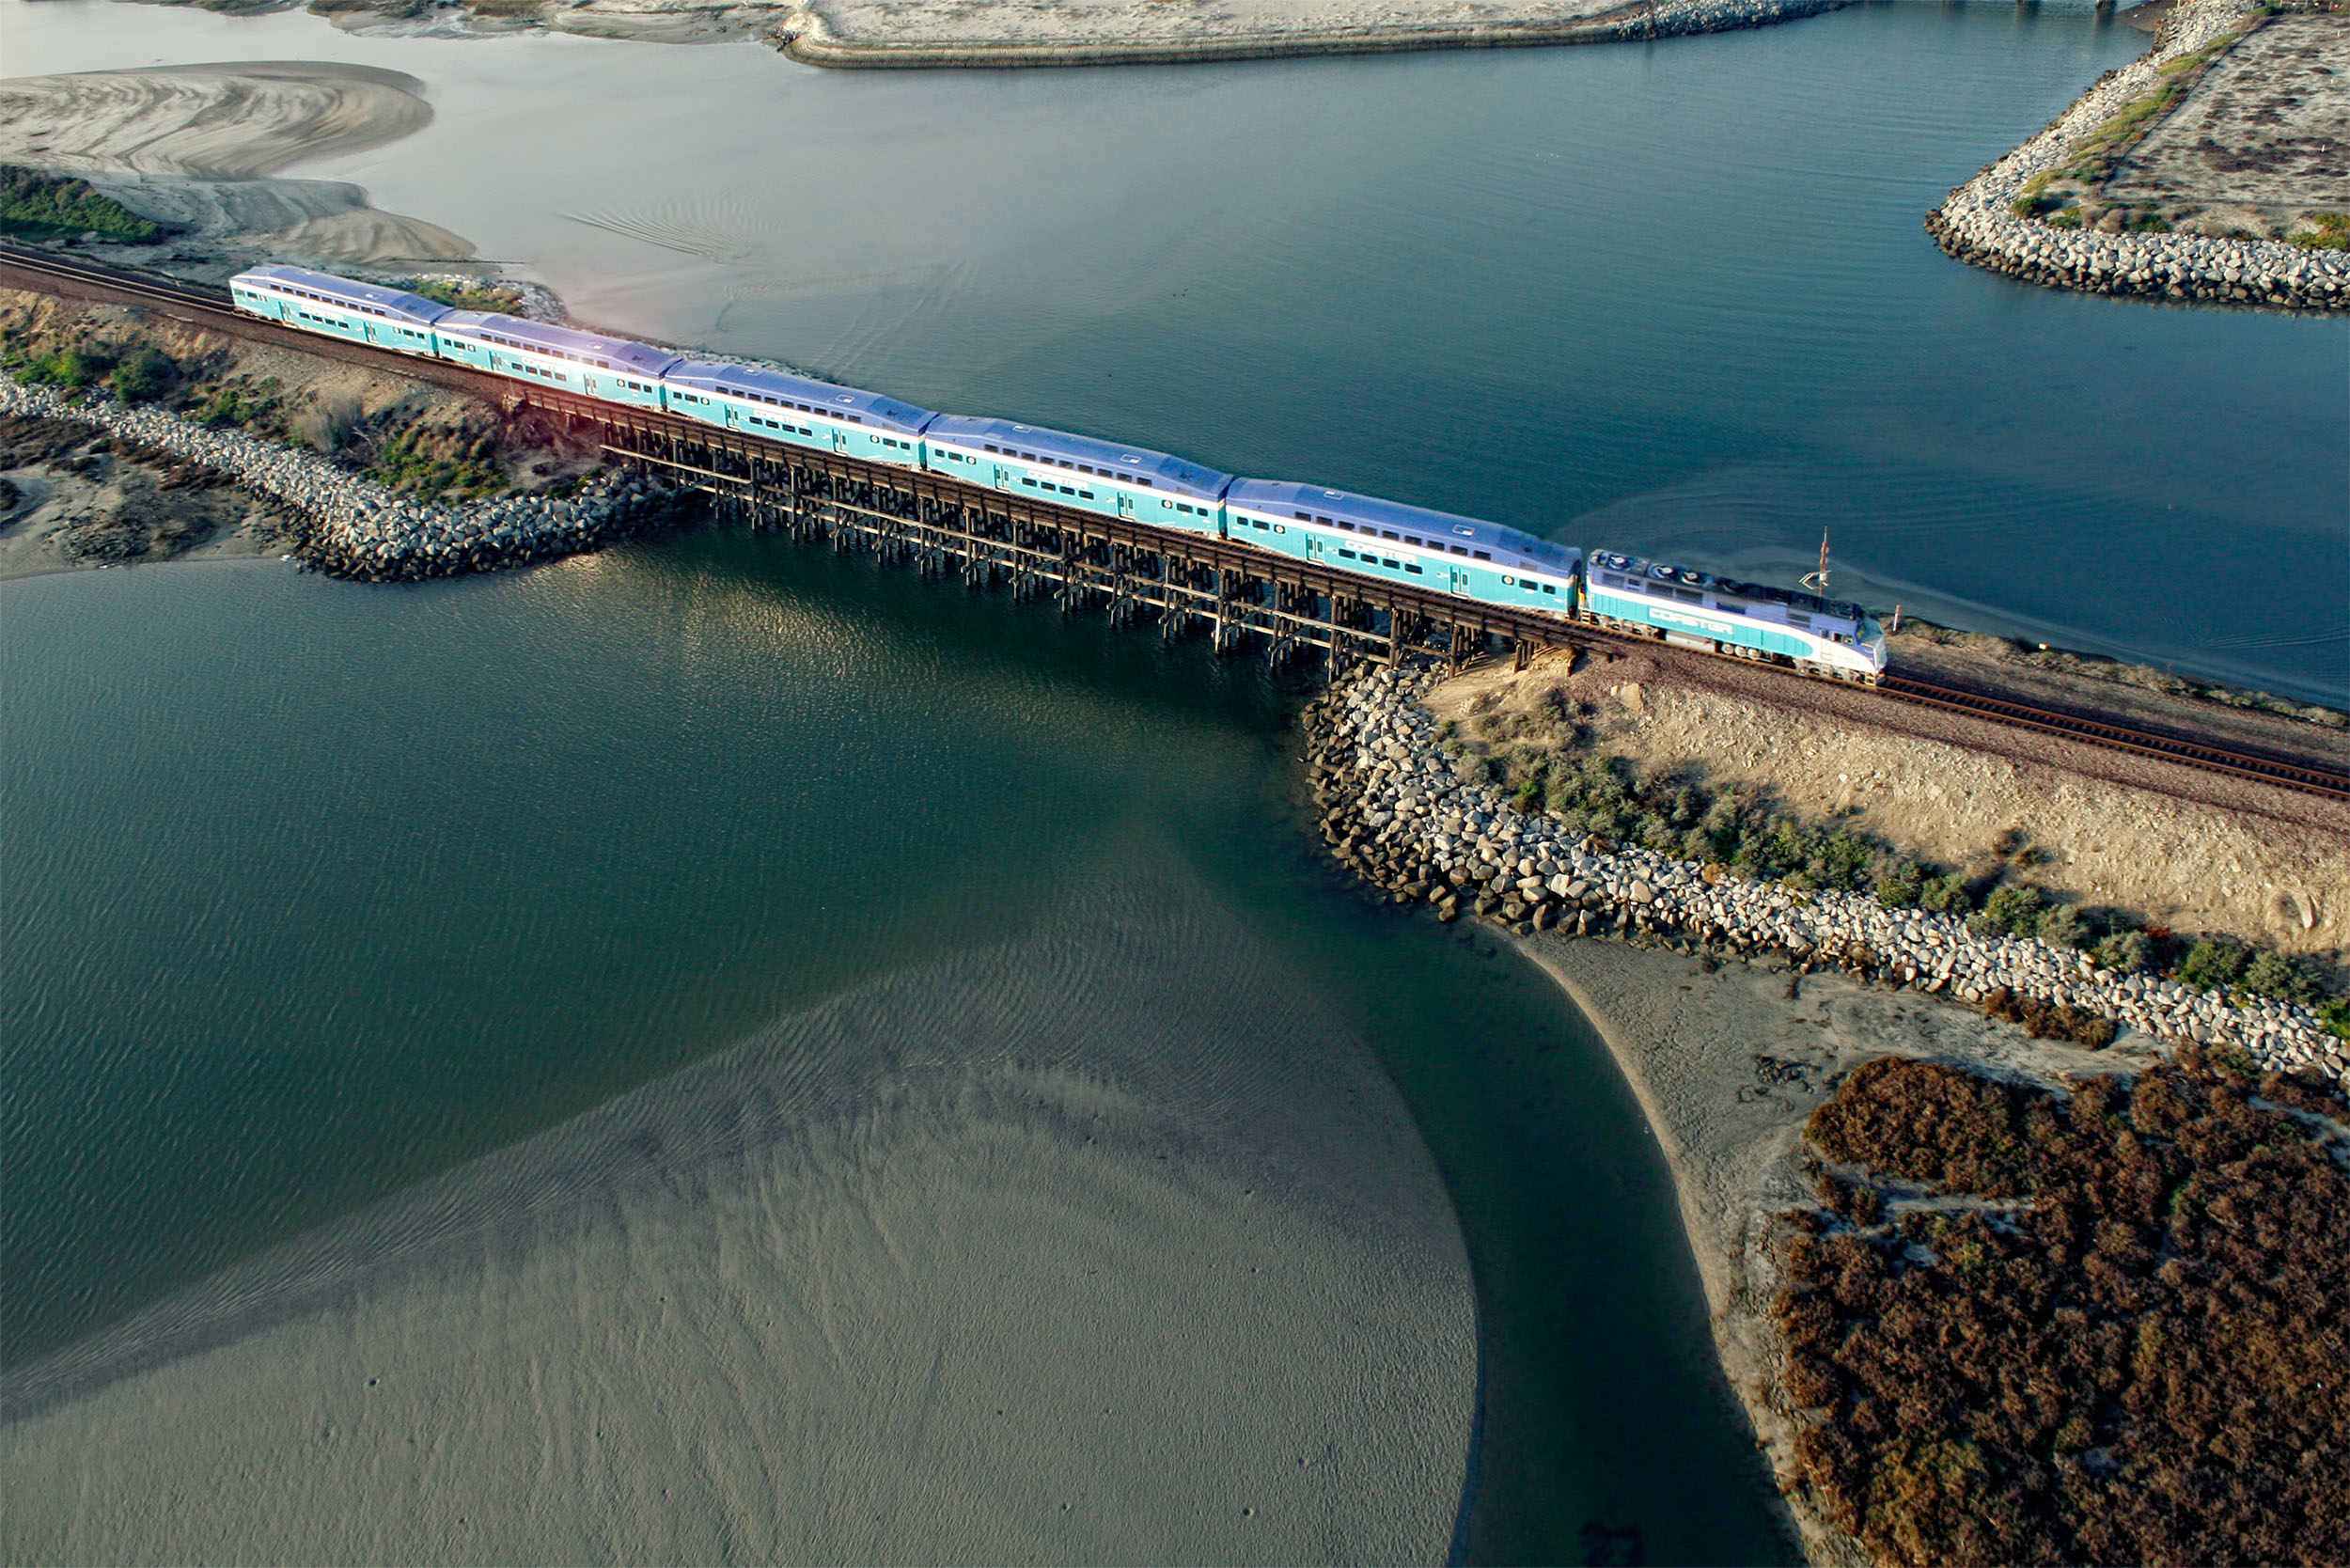 18_drone_aerial_photography_transportation_train.jpg